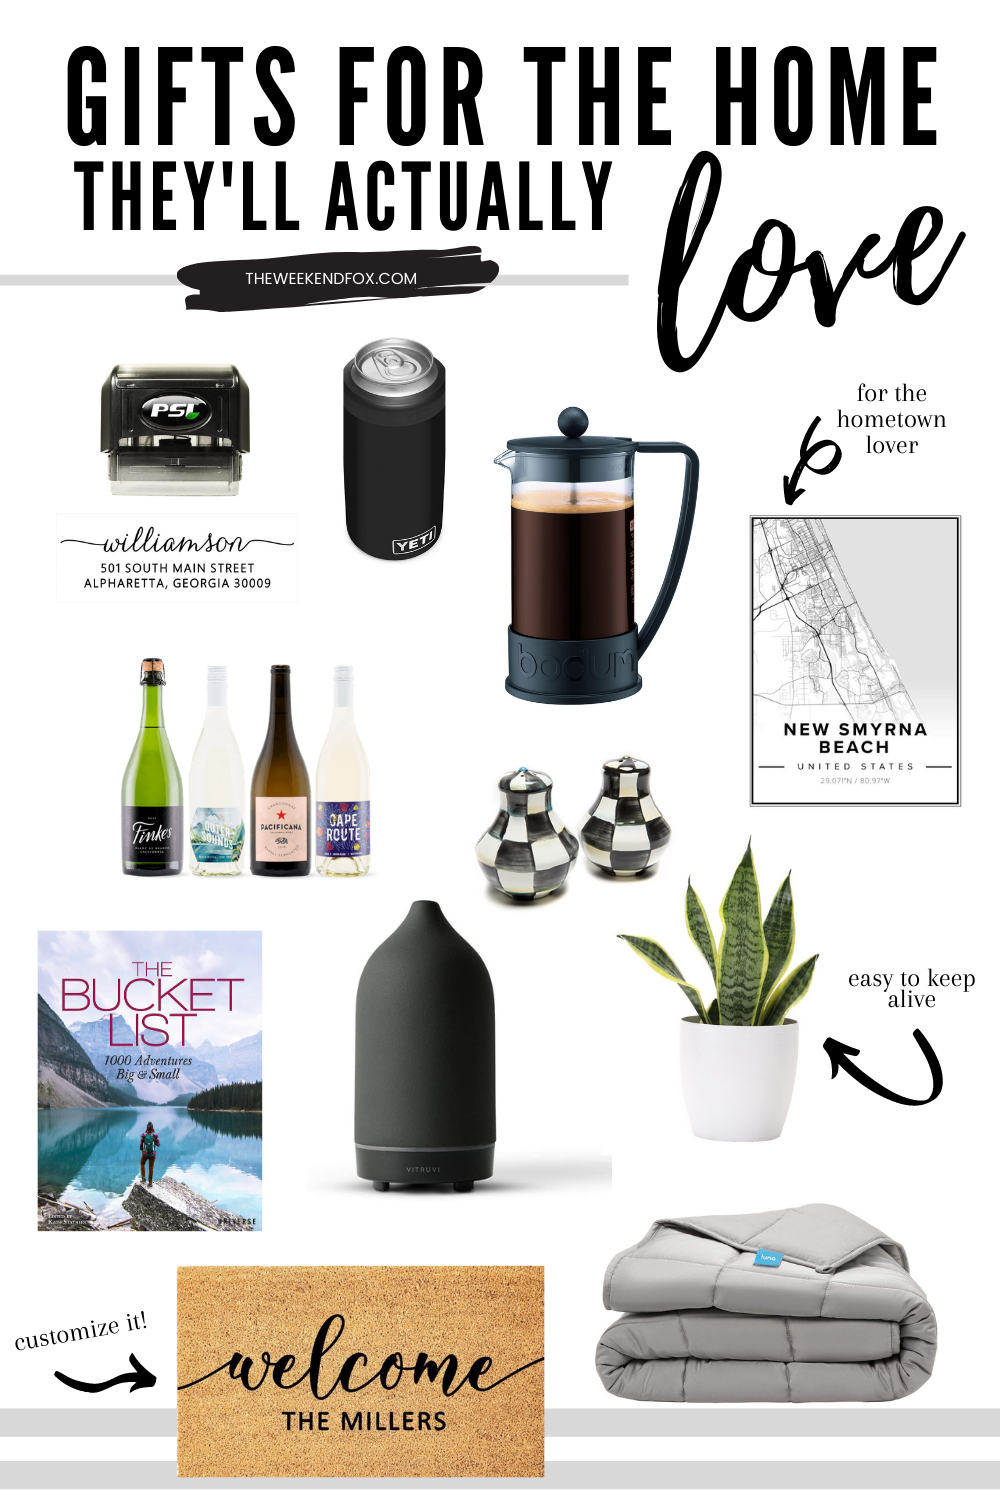 Best gifts for the home, affordable housewarming gifts, gifts for the home they'll love, useful gifts for the home, gifts for the home under $50, #giftsforthehome #giftguide2020 #housewarminggifts #bestgifts